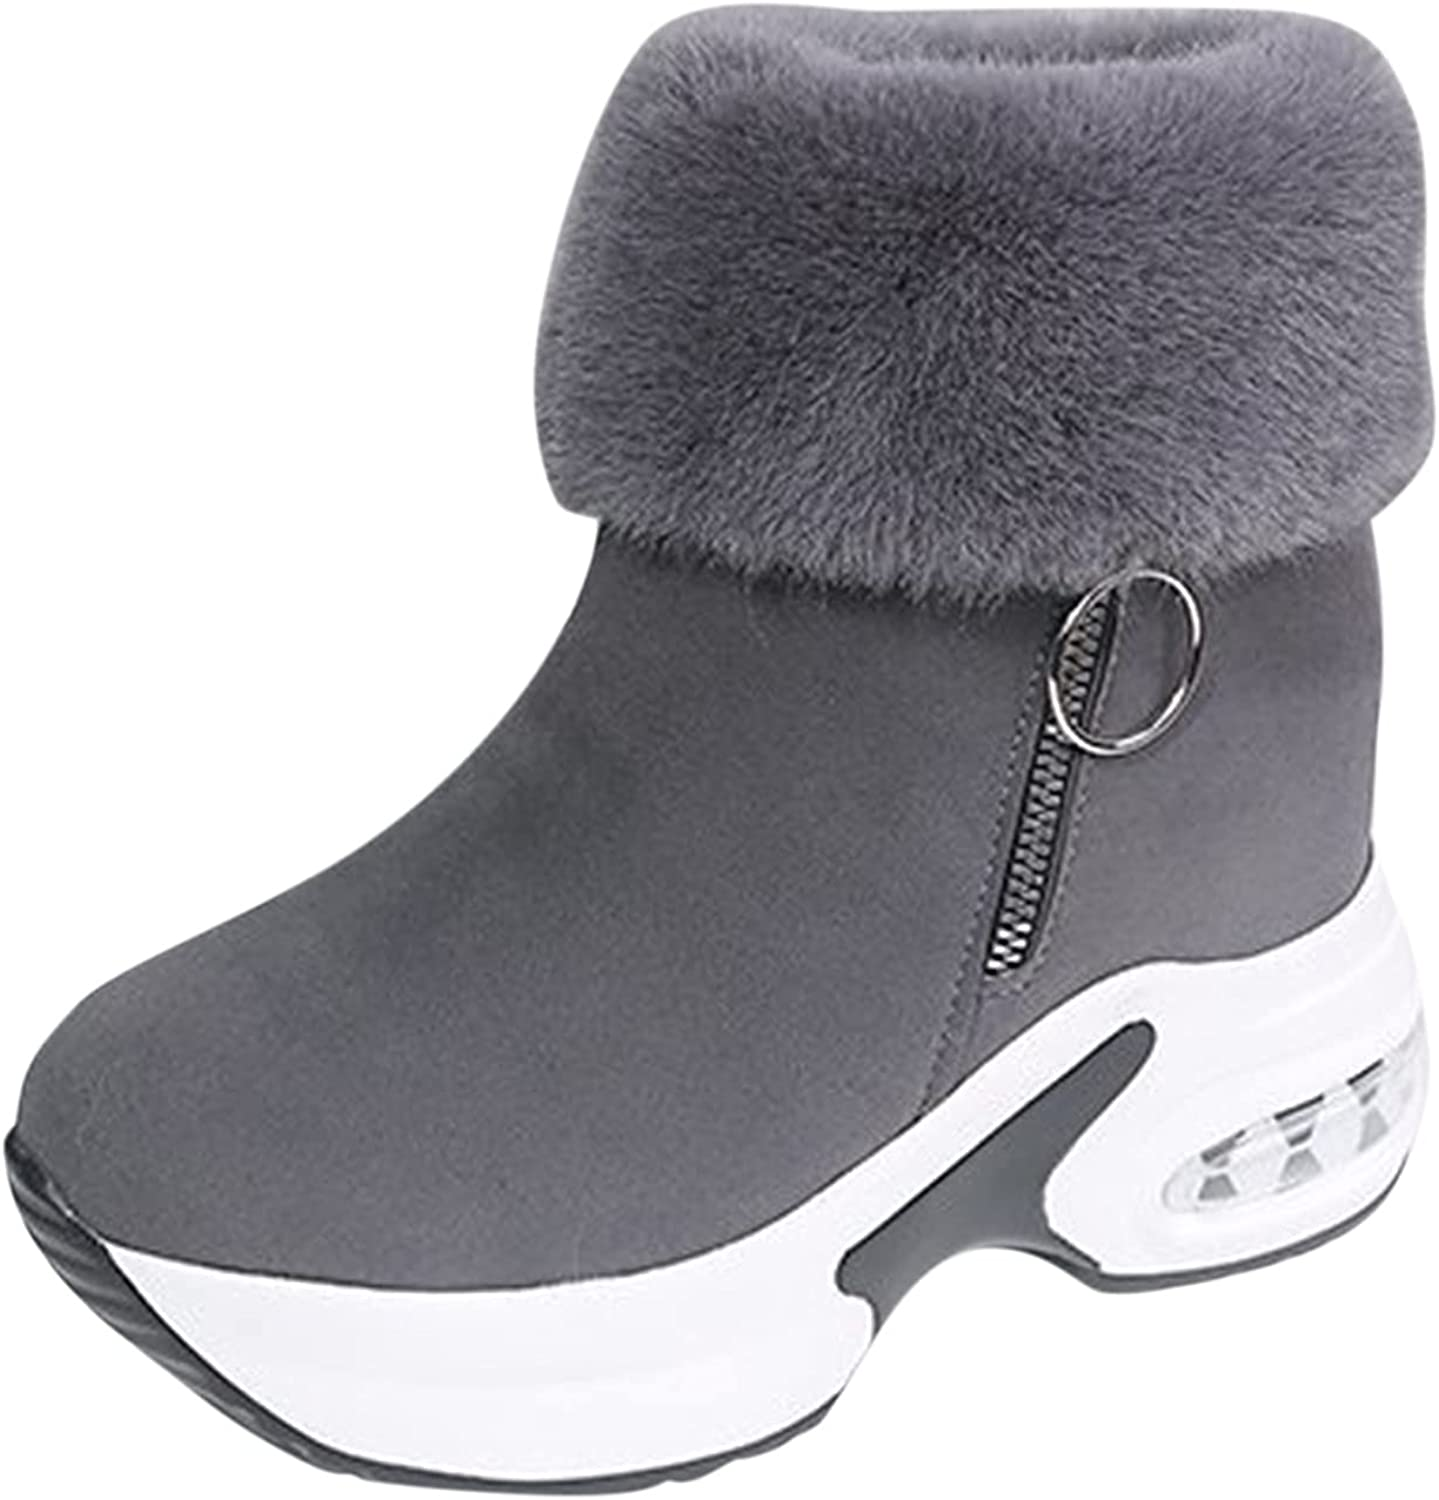 Boots For Women With Heel Boots for Women, Women's Round Toe Waterproof Lace up Work Combat Boots Low Heel Ankle Booties Gray